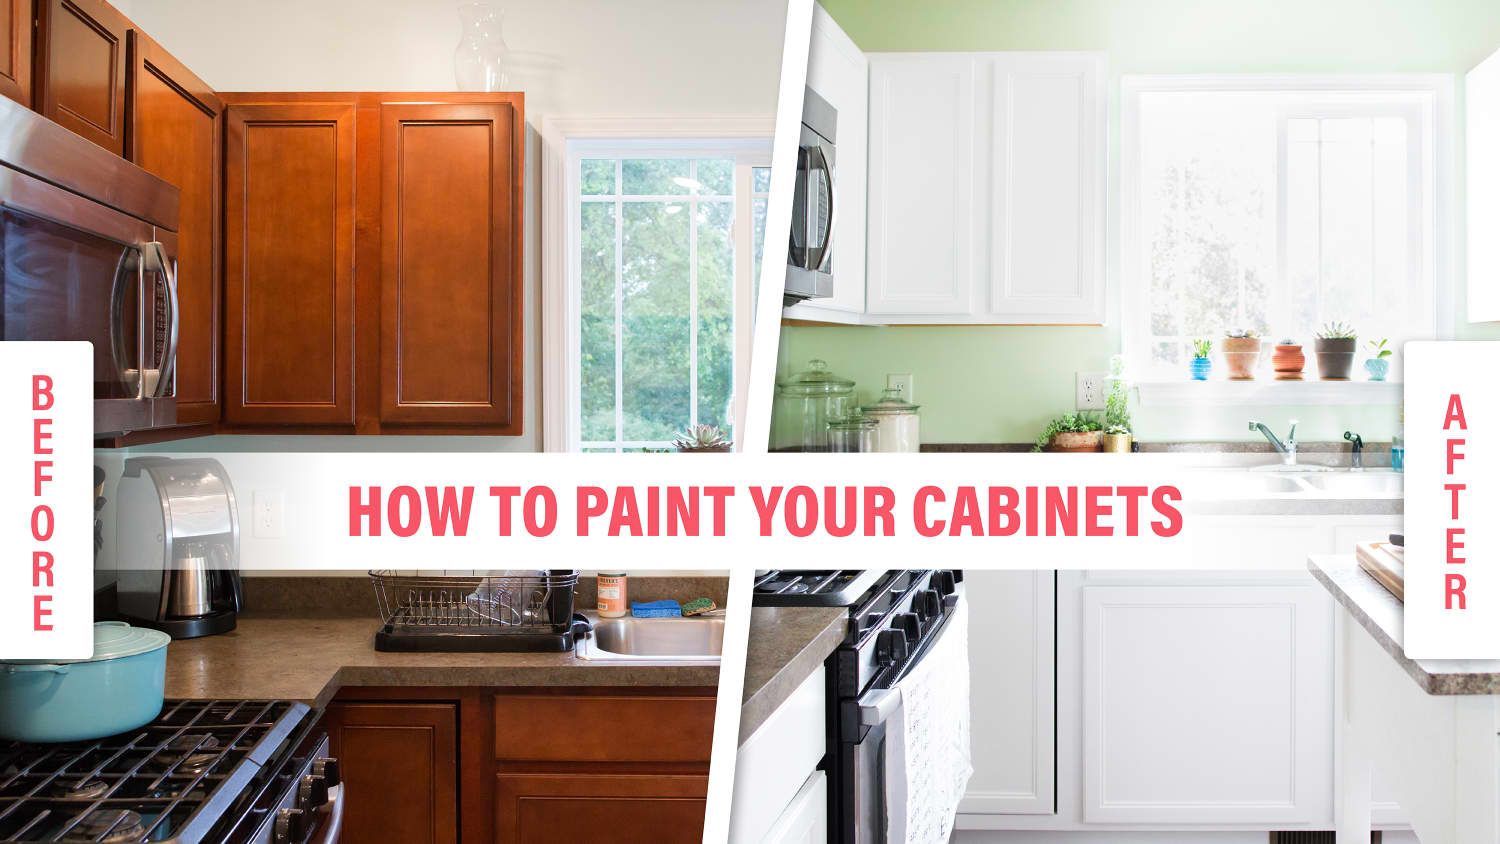 Painting Wood Kitchen Cabinets How To Paint Wood Kitchen Cabinets with White Paint | Kitchn